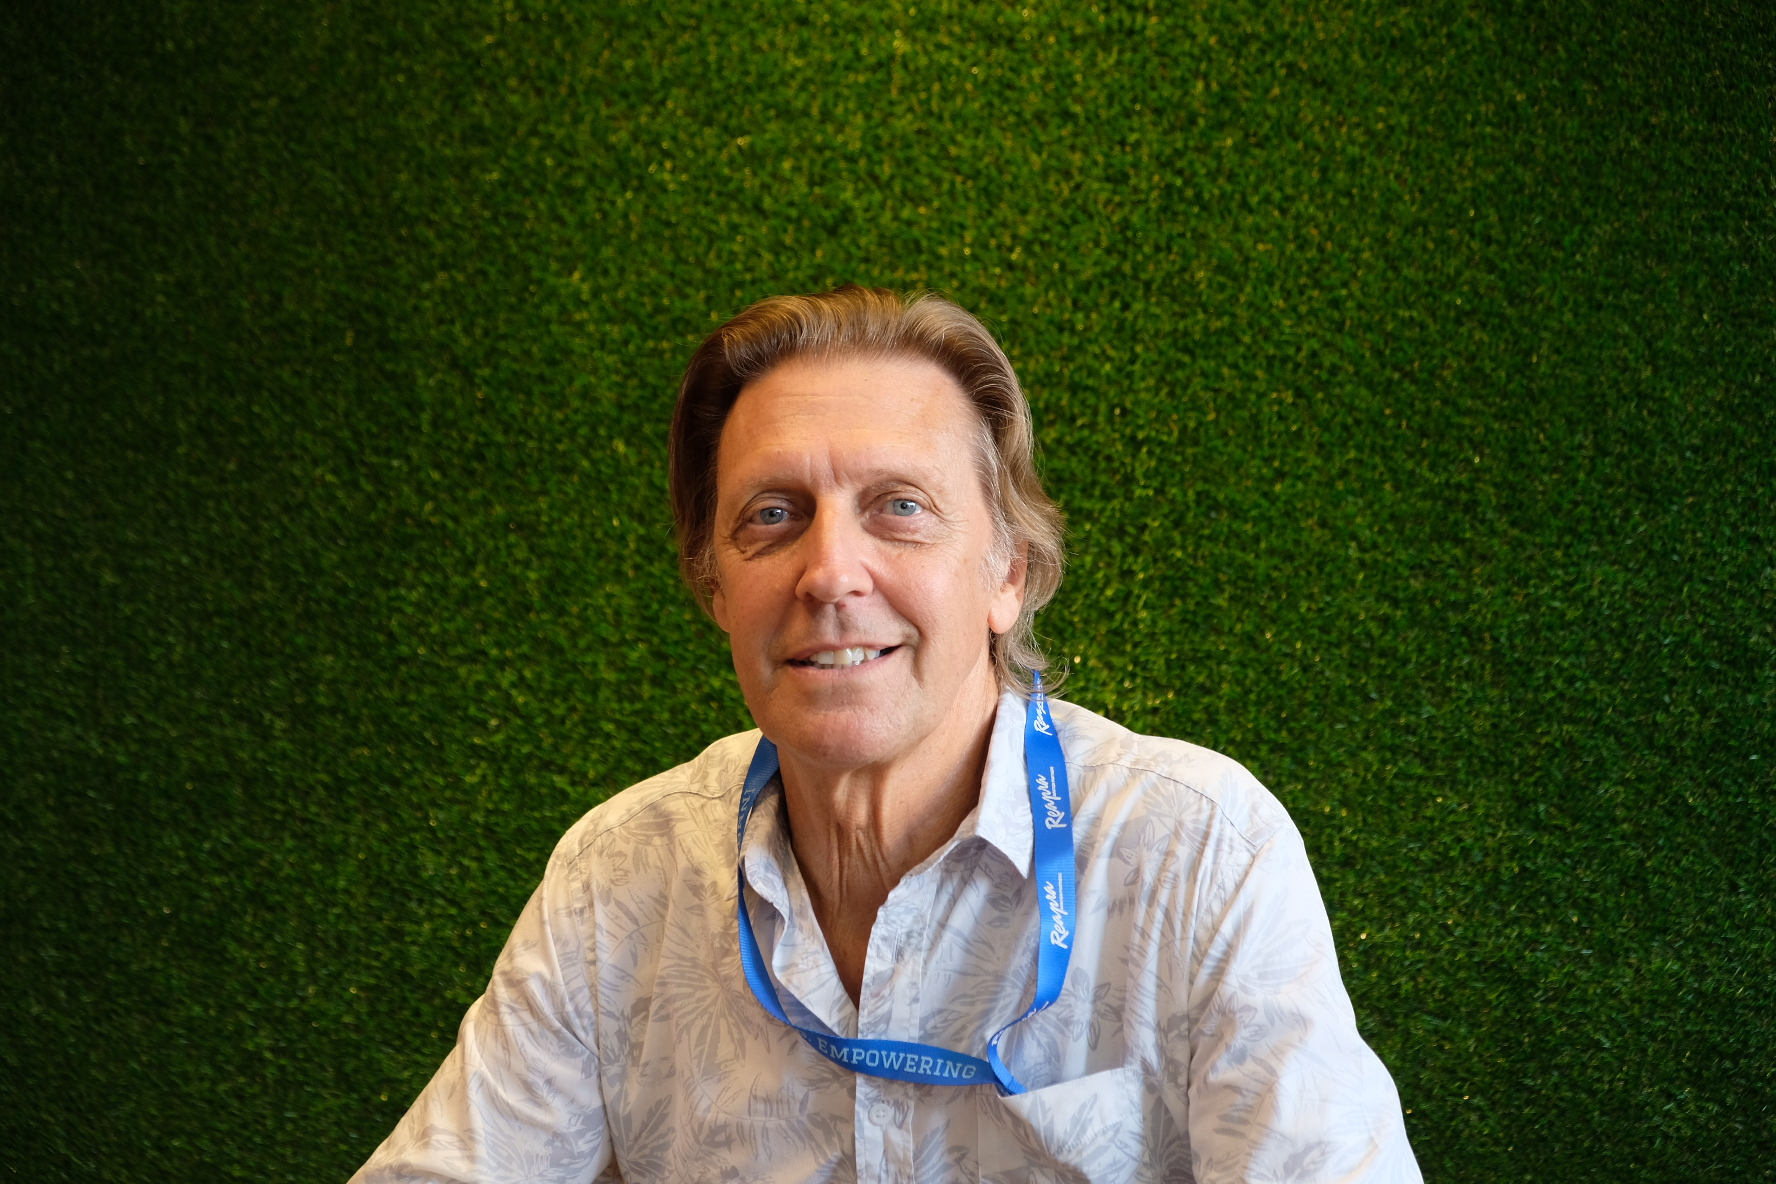 "Capt. Michael Caston (MRaeS)    Aviation Advisor - Reapra Aviation Partners Pte Ltd   Michael was a senior airline captain with British Airways & Singapore Airlines with more than 40 years of world-wide commercial flying experience. From 2007 to 2017, he was owner and operator of a Boeing 737NG FTD. He was also part of the team involved with the development of a synthetic flight training device and its application for certification with aviation regulatory authorities. He has been involved in advising for ab-initio flight training recruitment seminars. He has experience as a flight simulator instructor and Airline Transport Pilot License ground school theoretical knowledge instructor, specialising in Human Factors. He is a Crew Resource Management trainer and facilitator, and a Corporate trainer with ""FlightLeaders"", a corporate leadership training organisation. He is currently a member of the Royal Aeronautical Society."